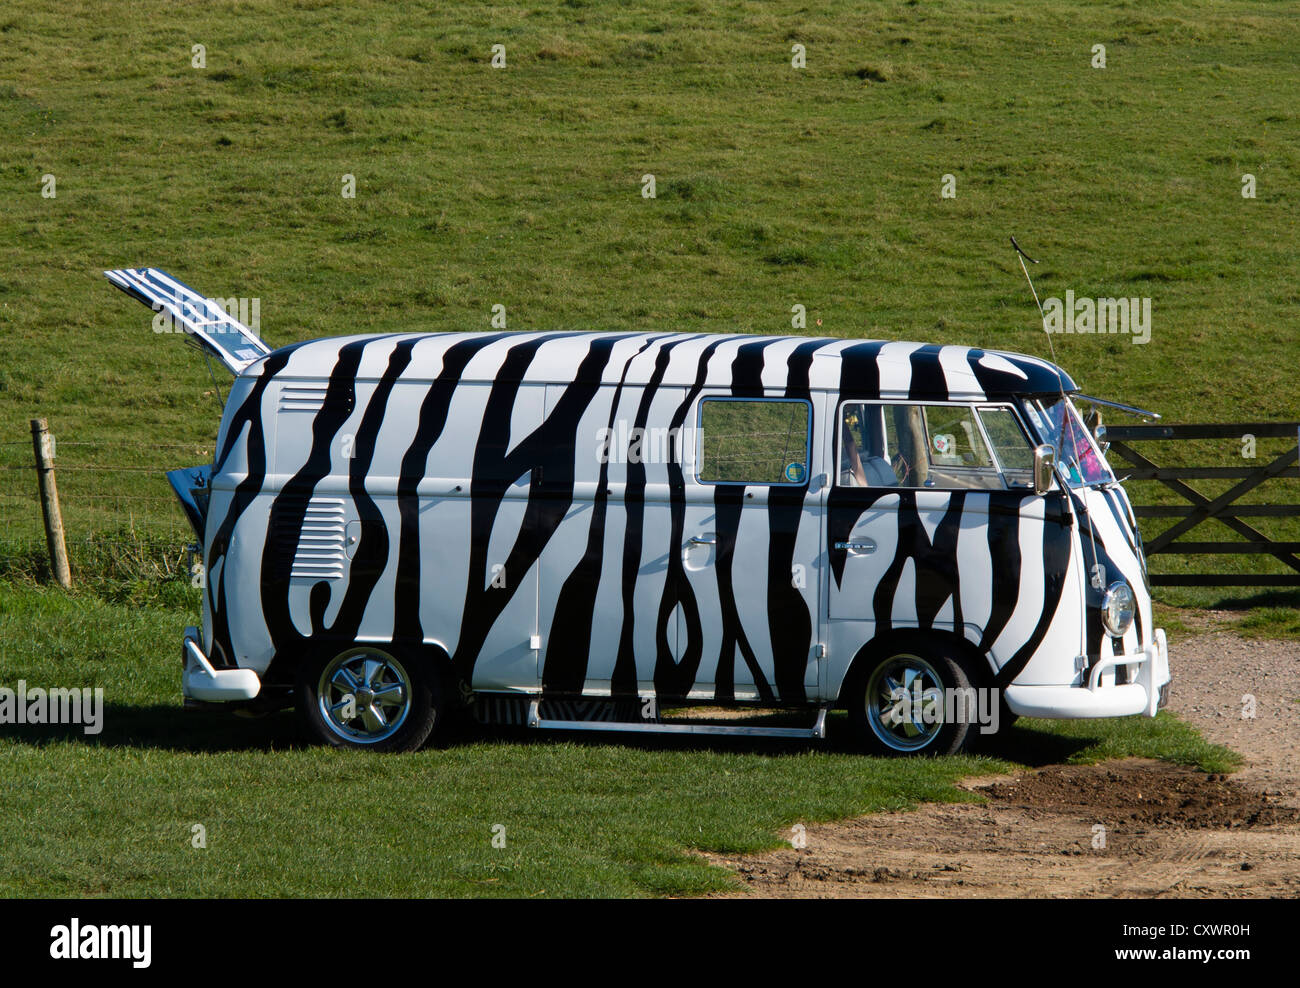 VW Camper Van with Zebra-Striped Paintwork - Stock Image